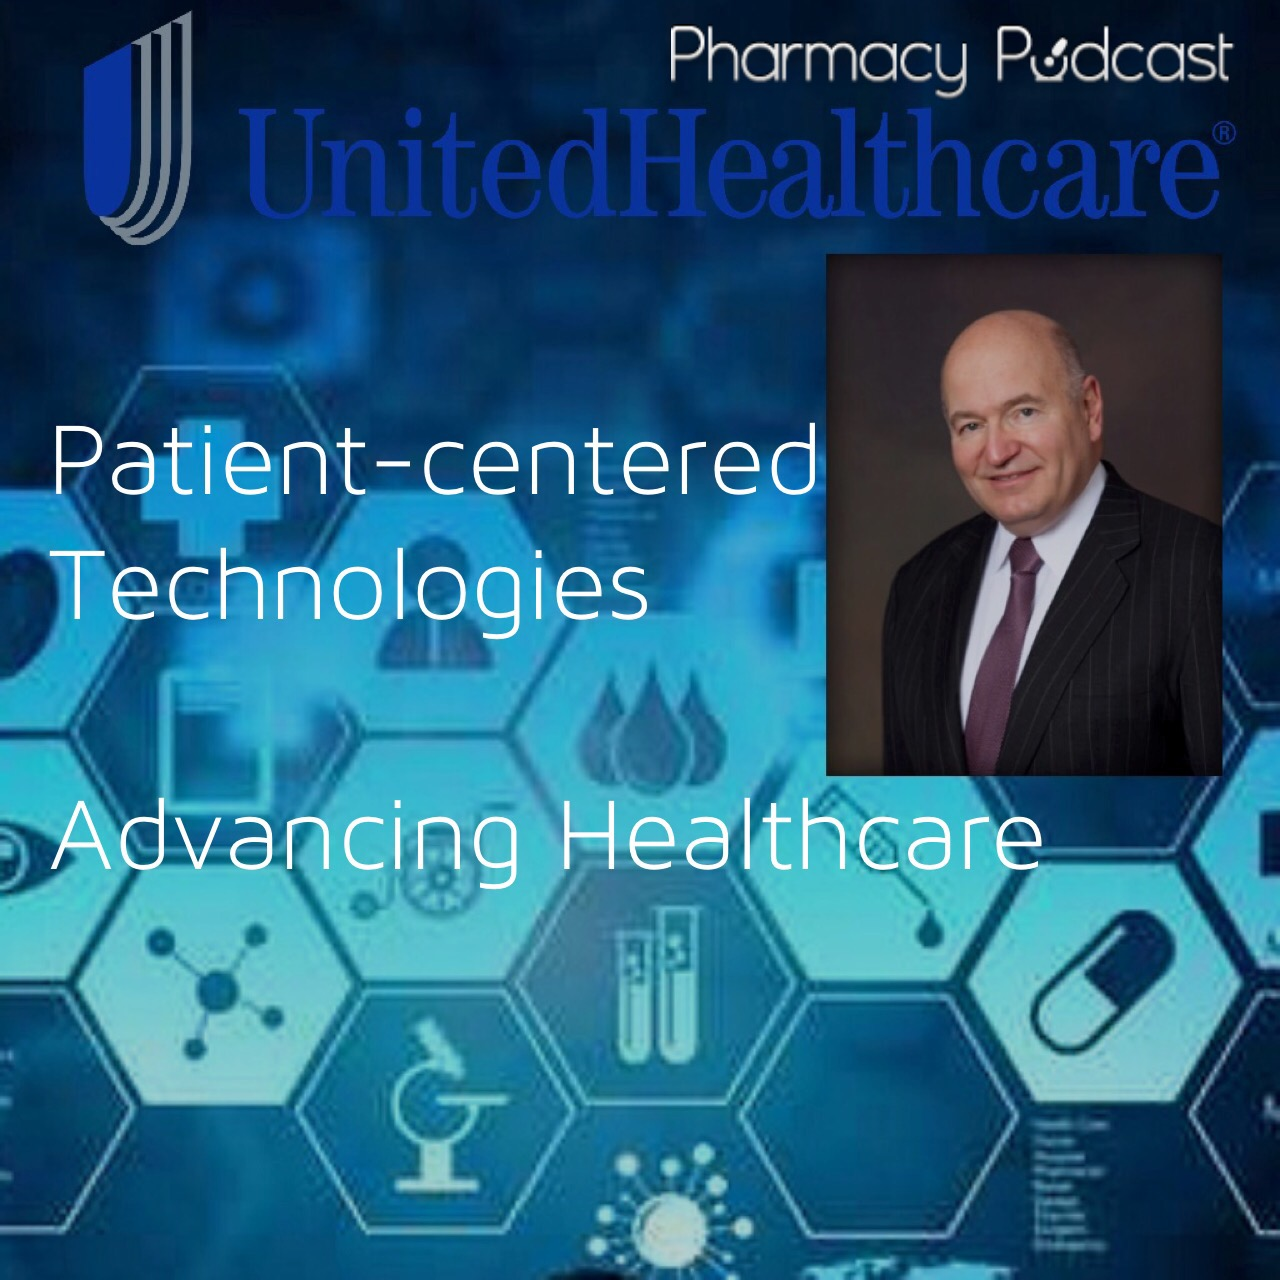 Patient-centered Technologies Advancing Healthcare with Dr. Richard Migliori  Pharmacy Podcast Episode 236